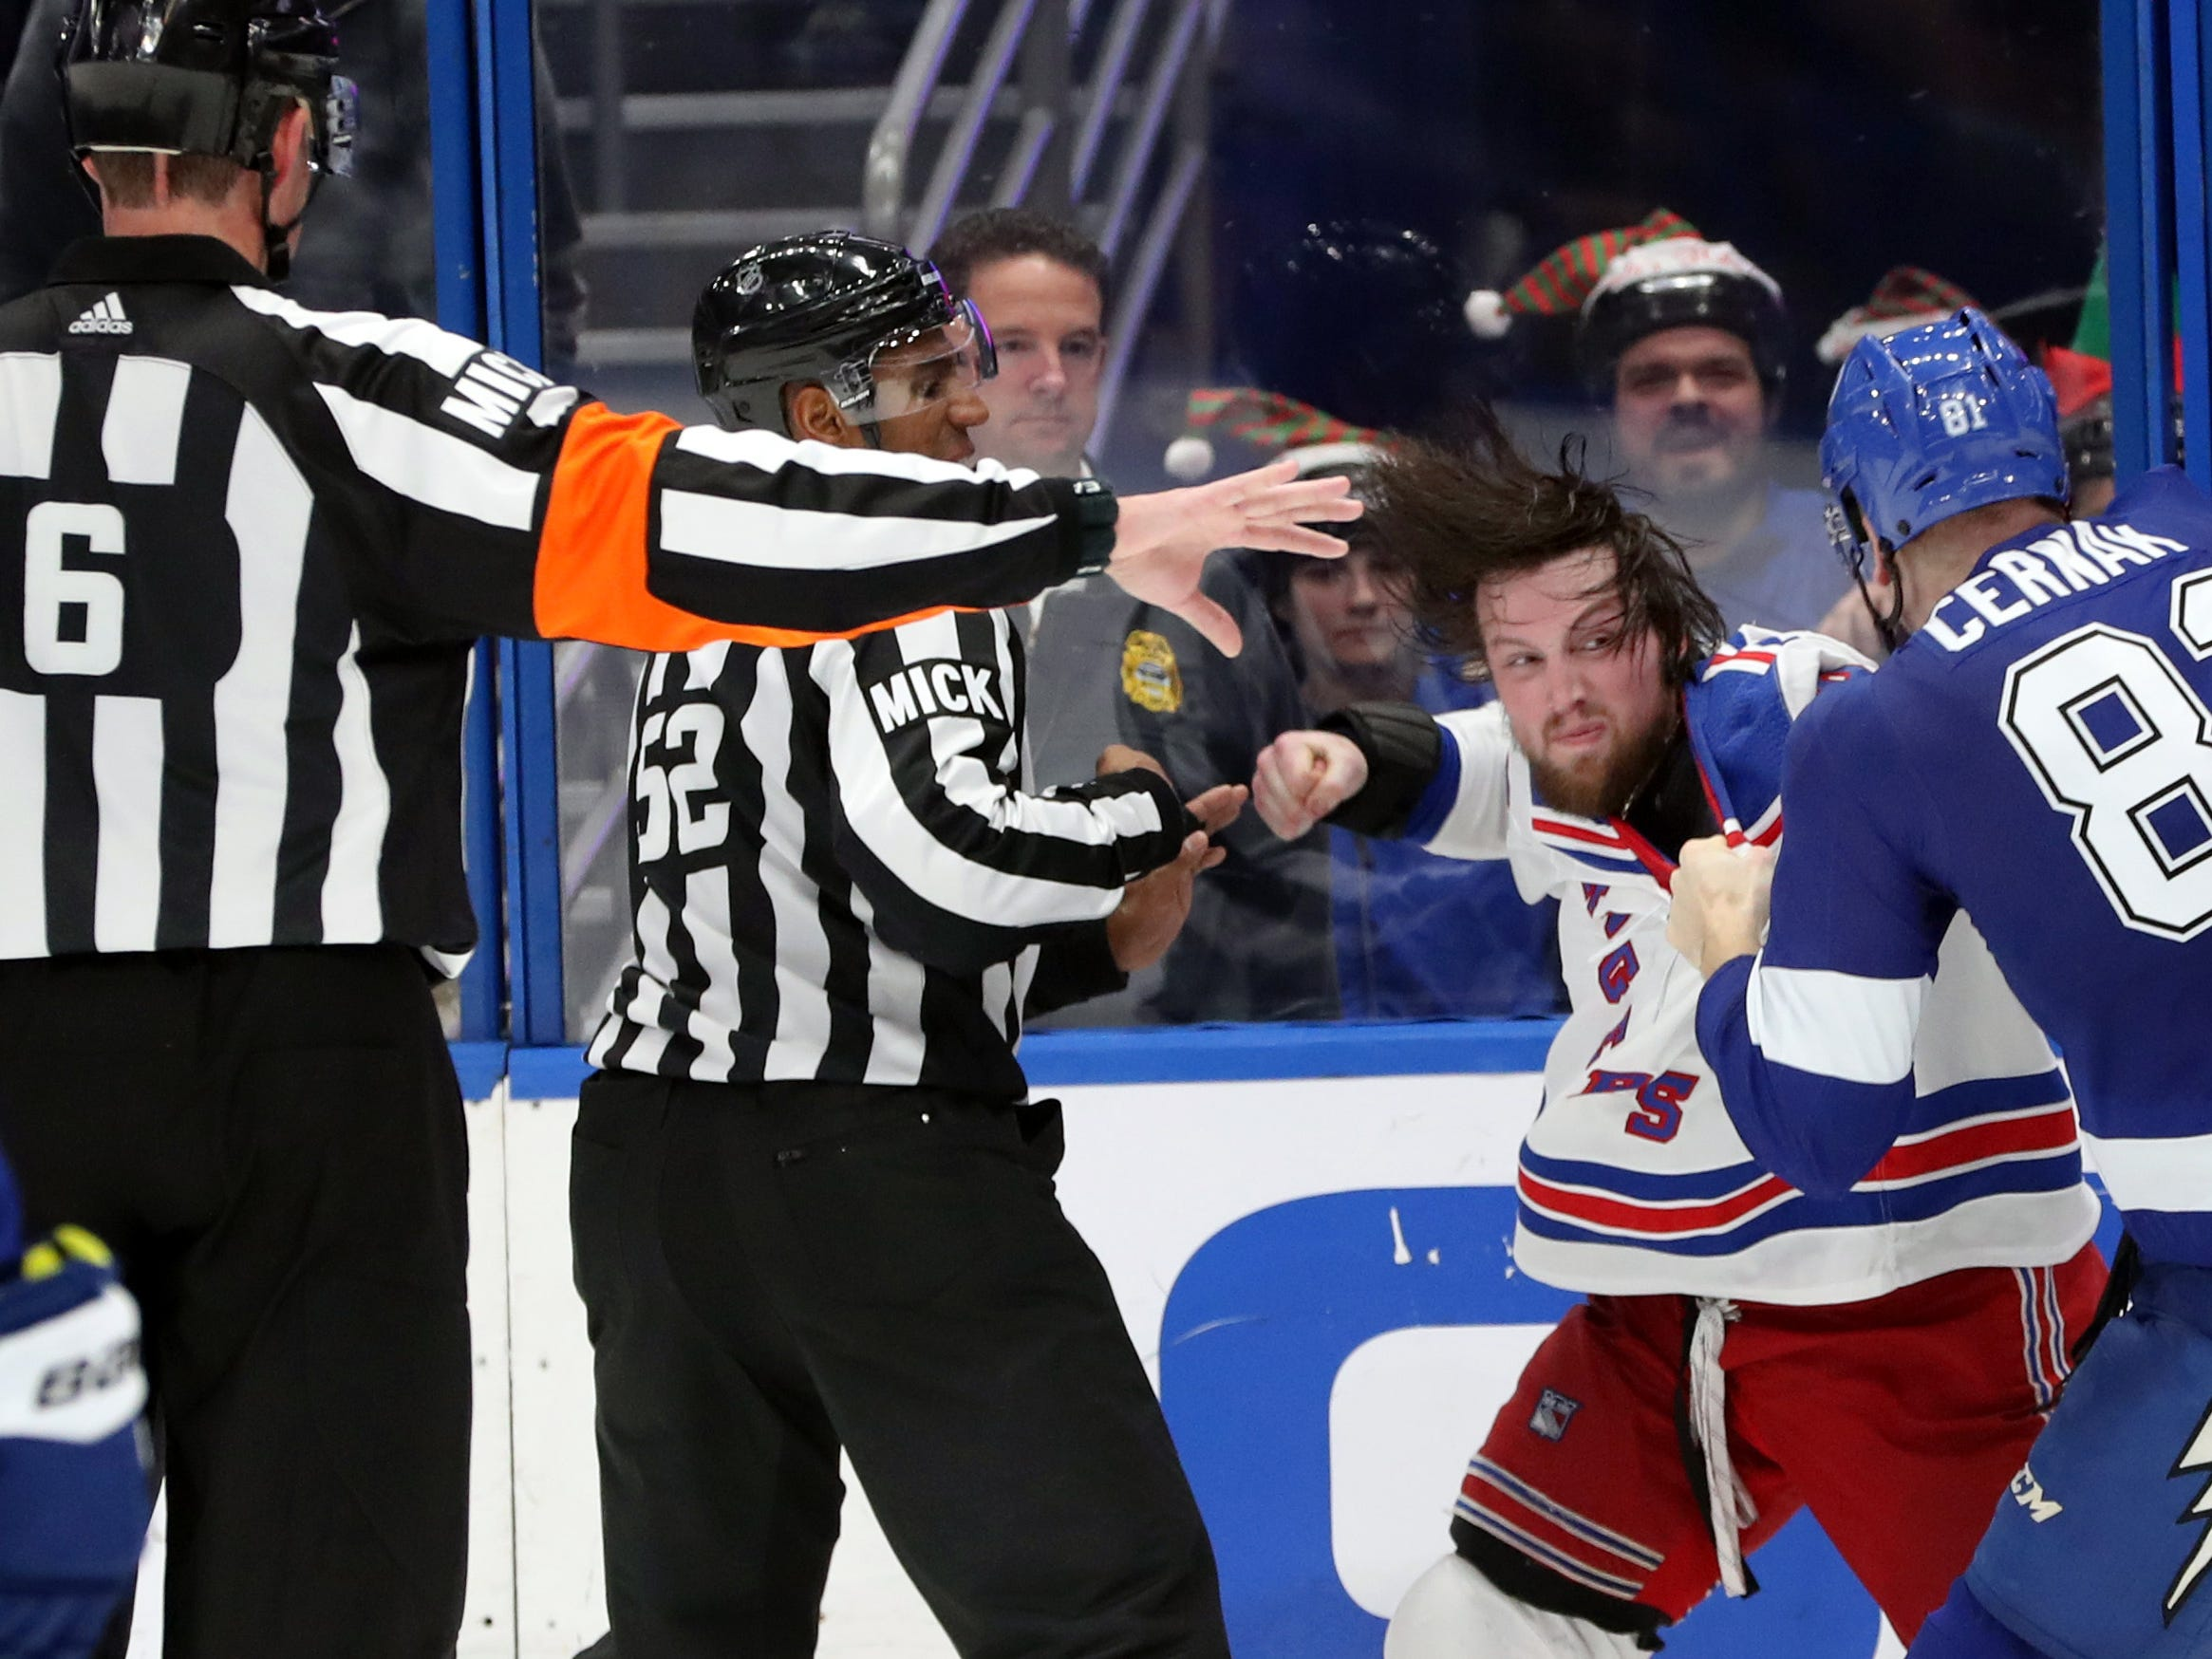 Dec. 10: Tampa Bay Lightning's Erik Cernak vs. New York Rangers left wing Matt Beleskey